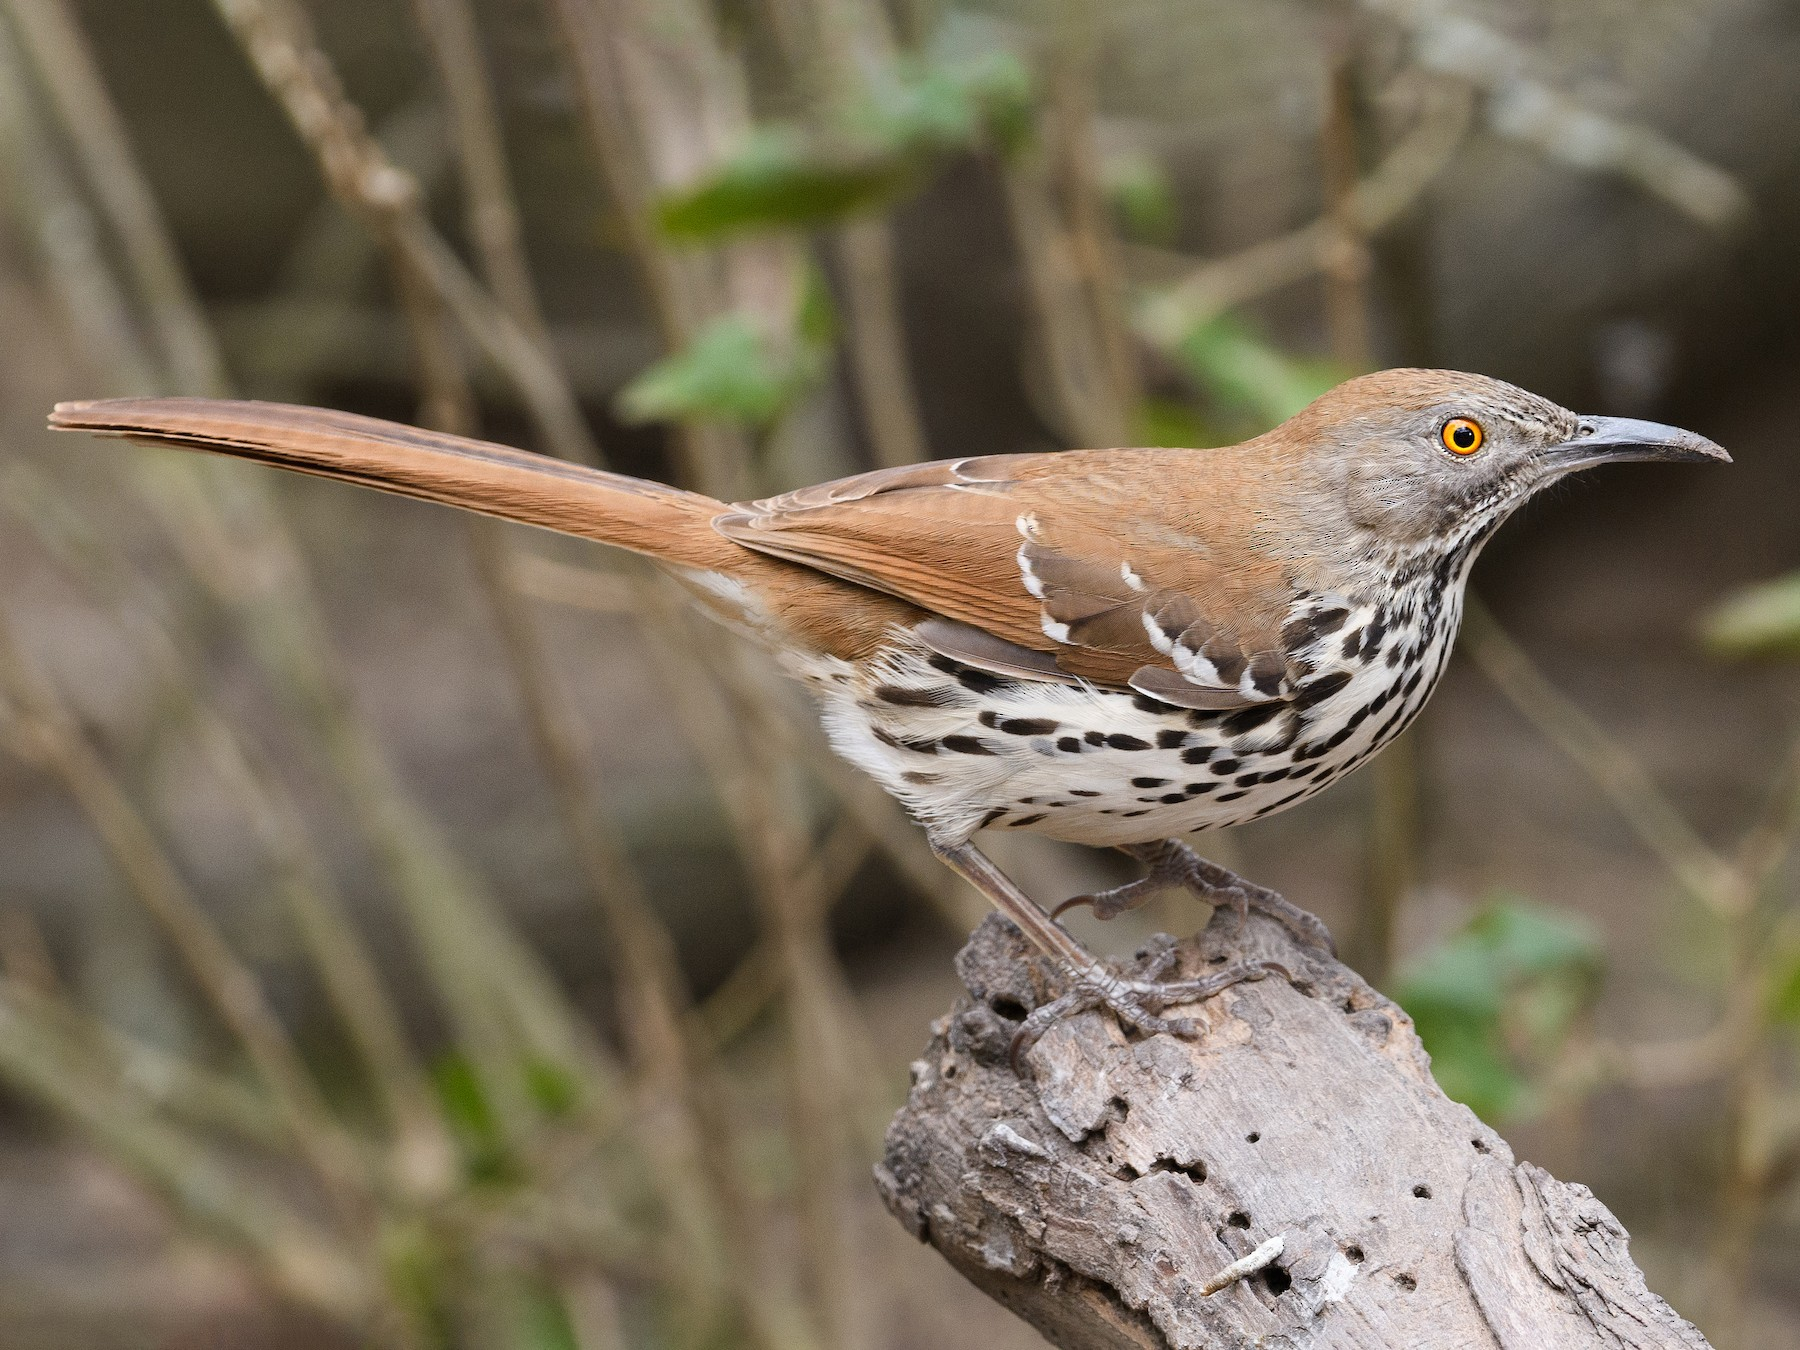 Long-billed Thrasher - Darren Clark